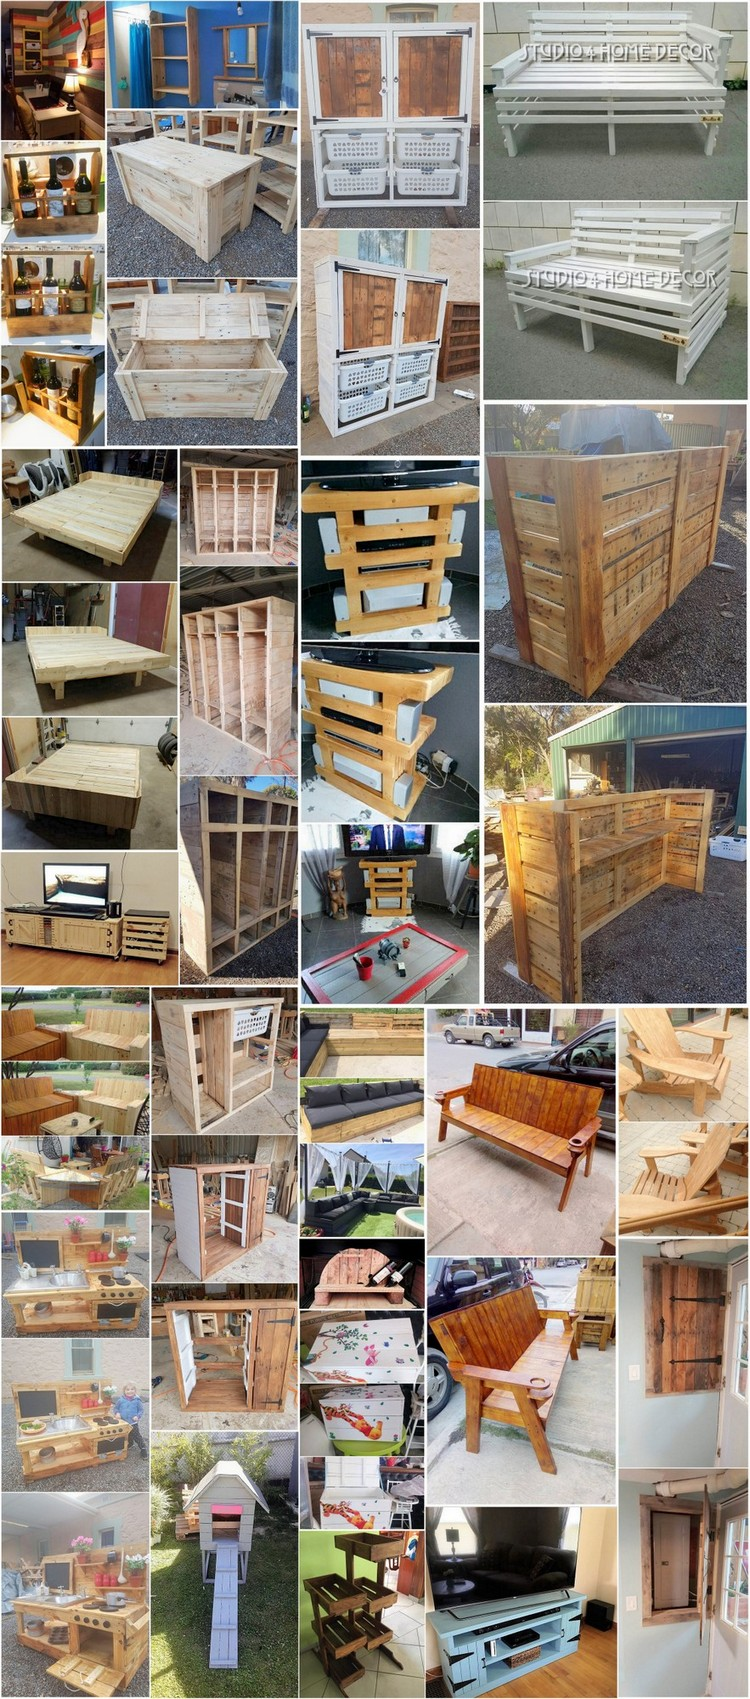 Genius ideas for reusing old wooden pallets pallet wood for Old wood pallets ideas